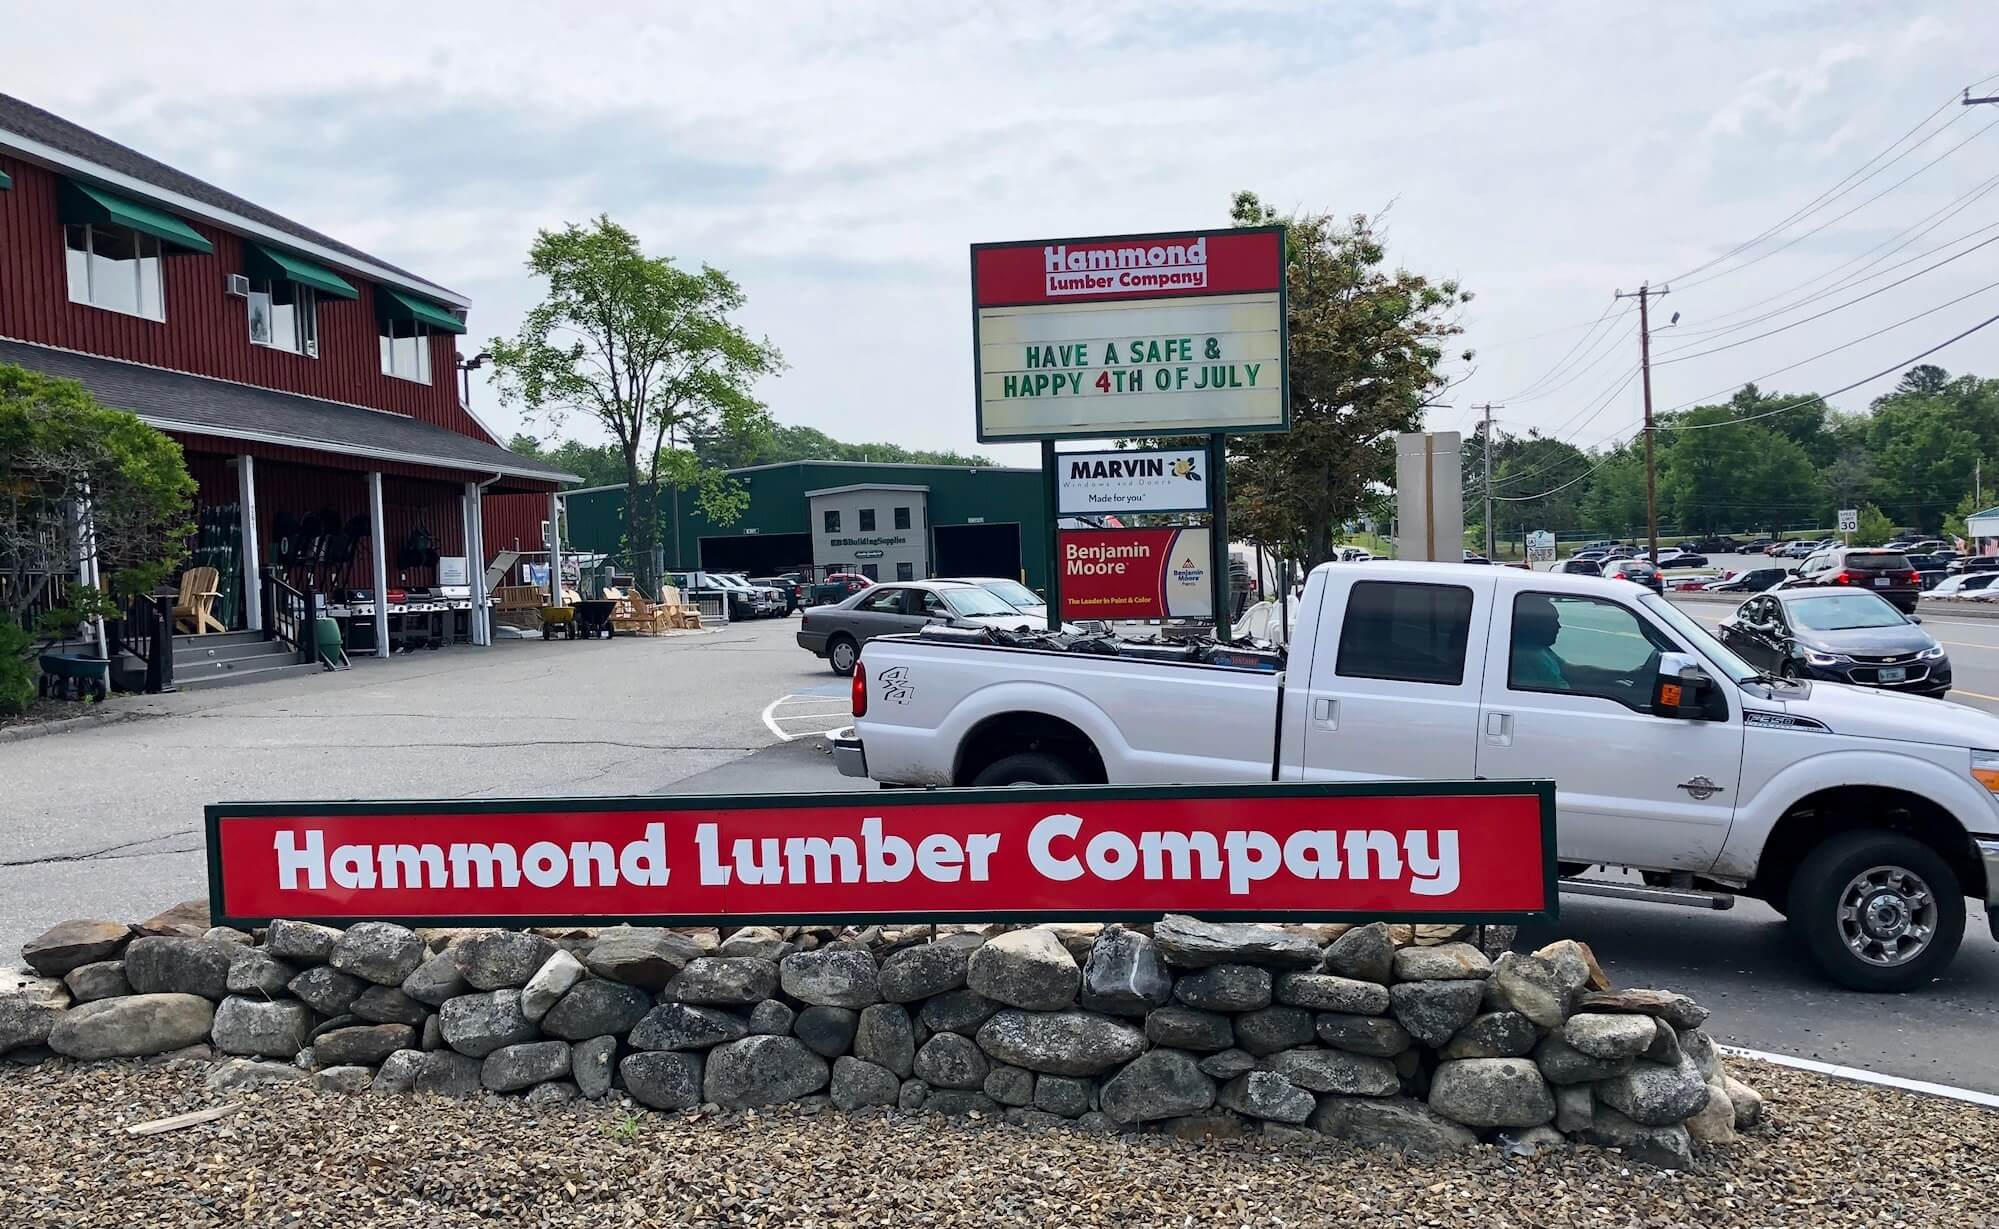 Hammond Lumber Company Ellsworth